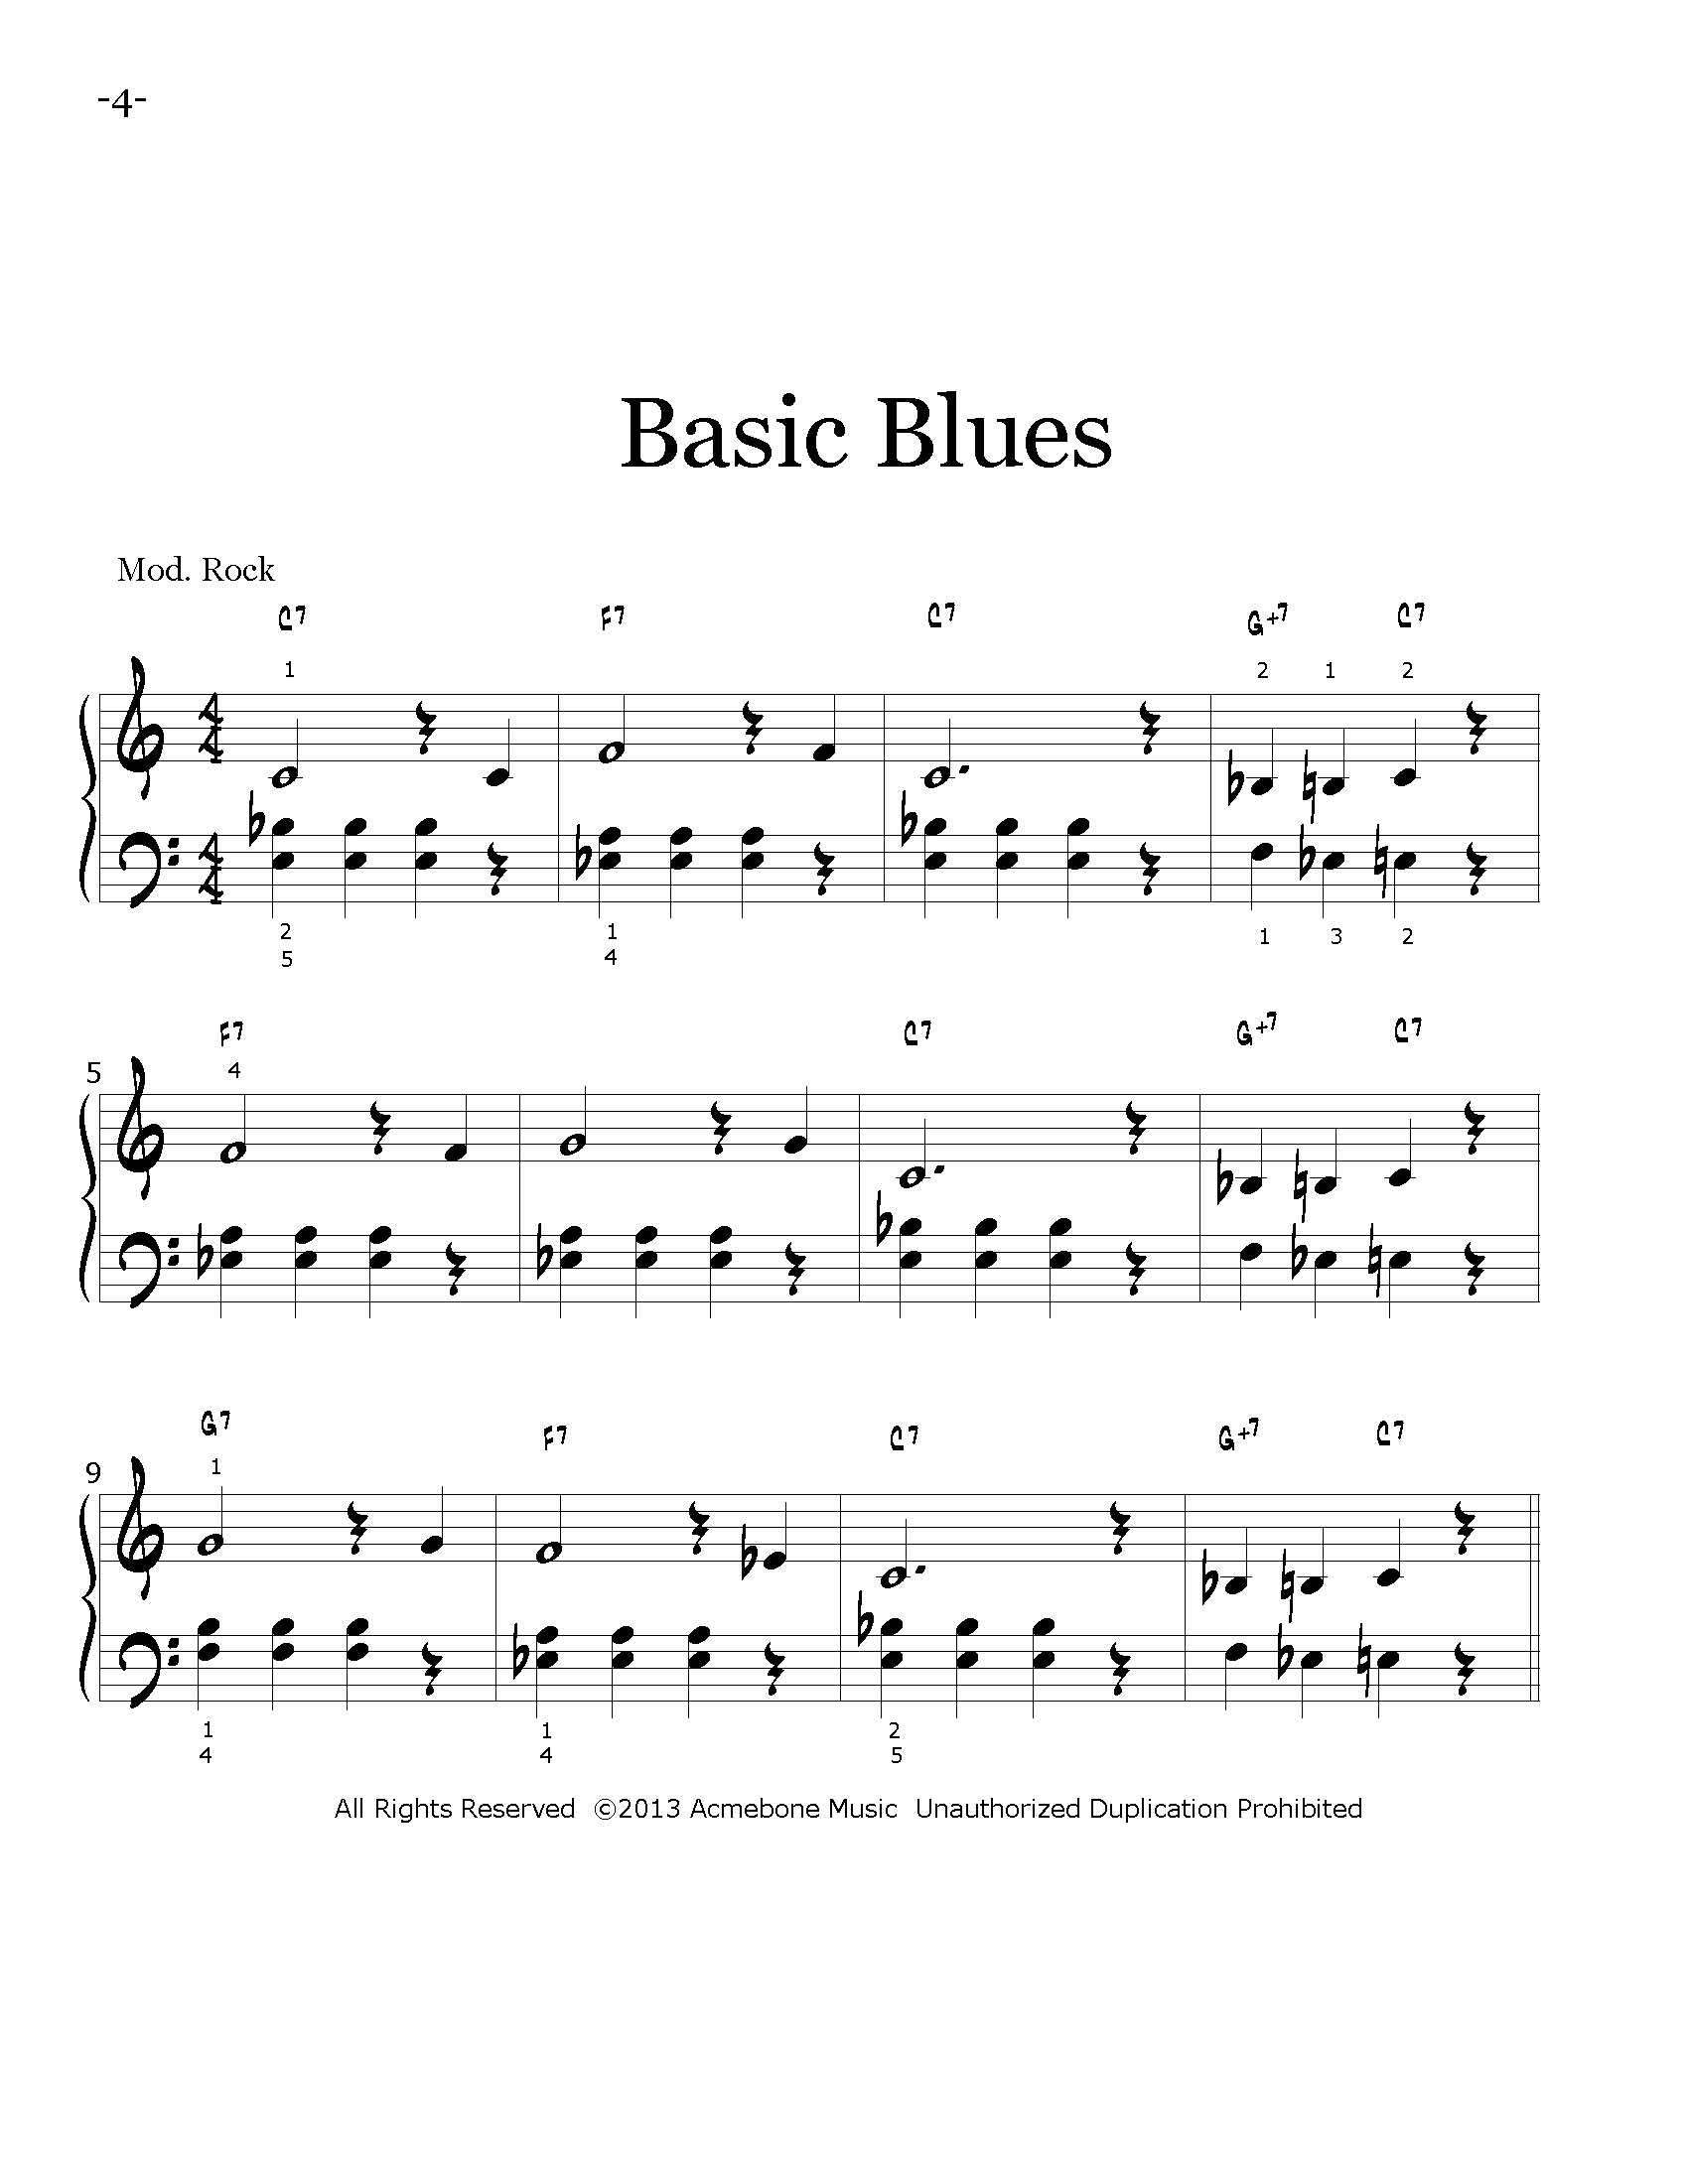 Progressive Jazz Etudes for Piano bk1 for web_Page_05.jpg